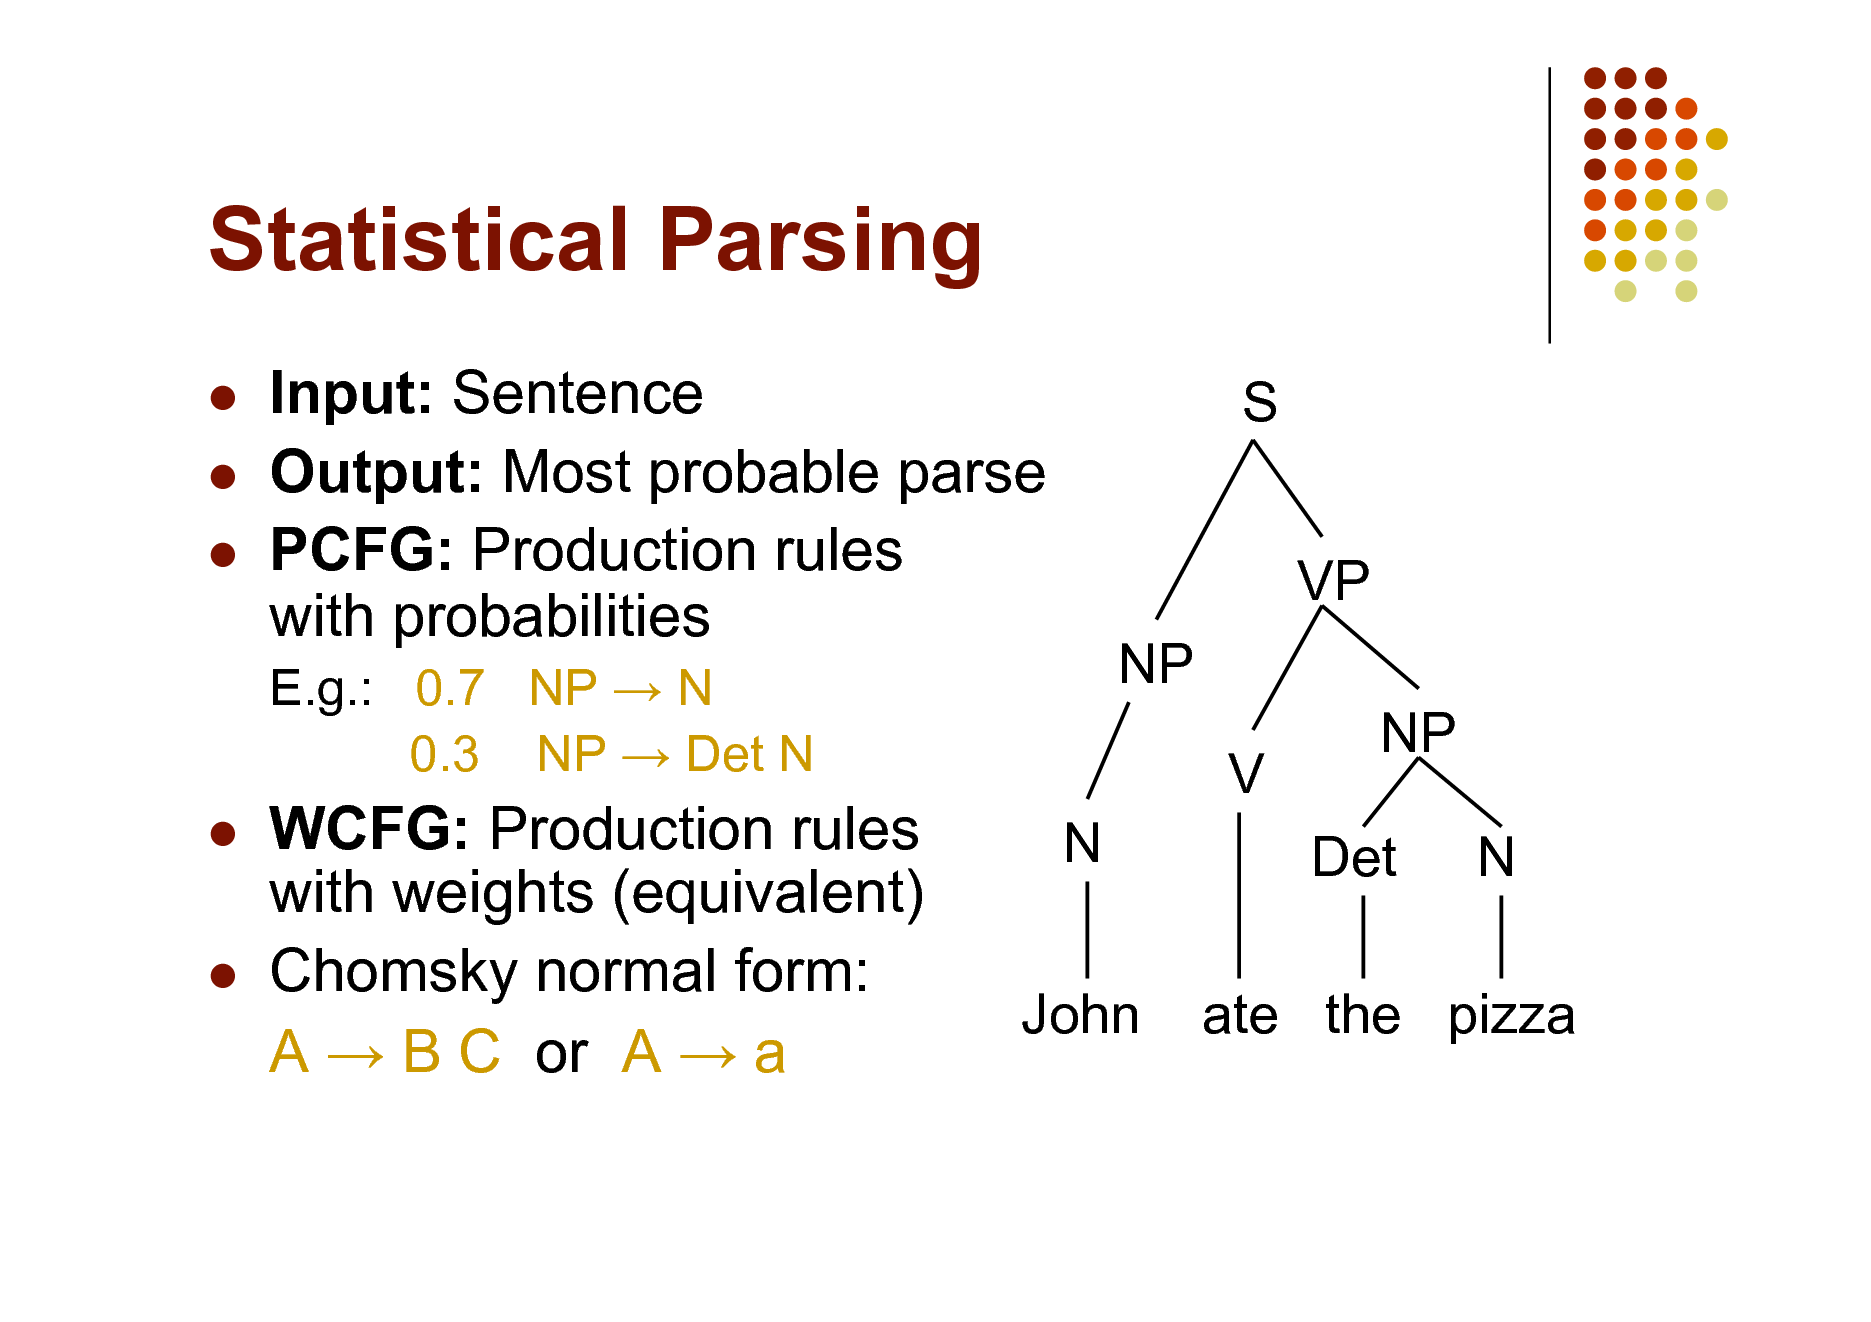 Slide: Statistical Parsing     Input: Sentence Output: Most probable parse PCFG: Production rules with probabilities E.g.: 0.7 NP  N 0.3 NP  Det N  S VP NP V N NP Det N     WCFG: Production rules with weights (equivalent) Chomsky normal form: A  B C or A  a  John  ate the pizza